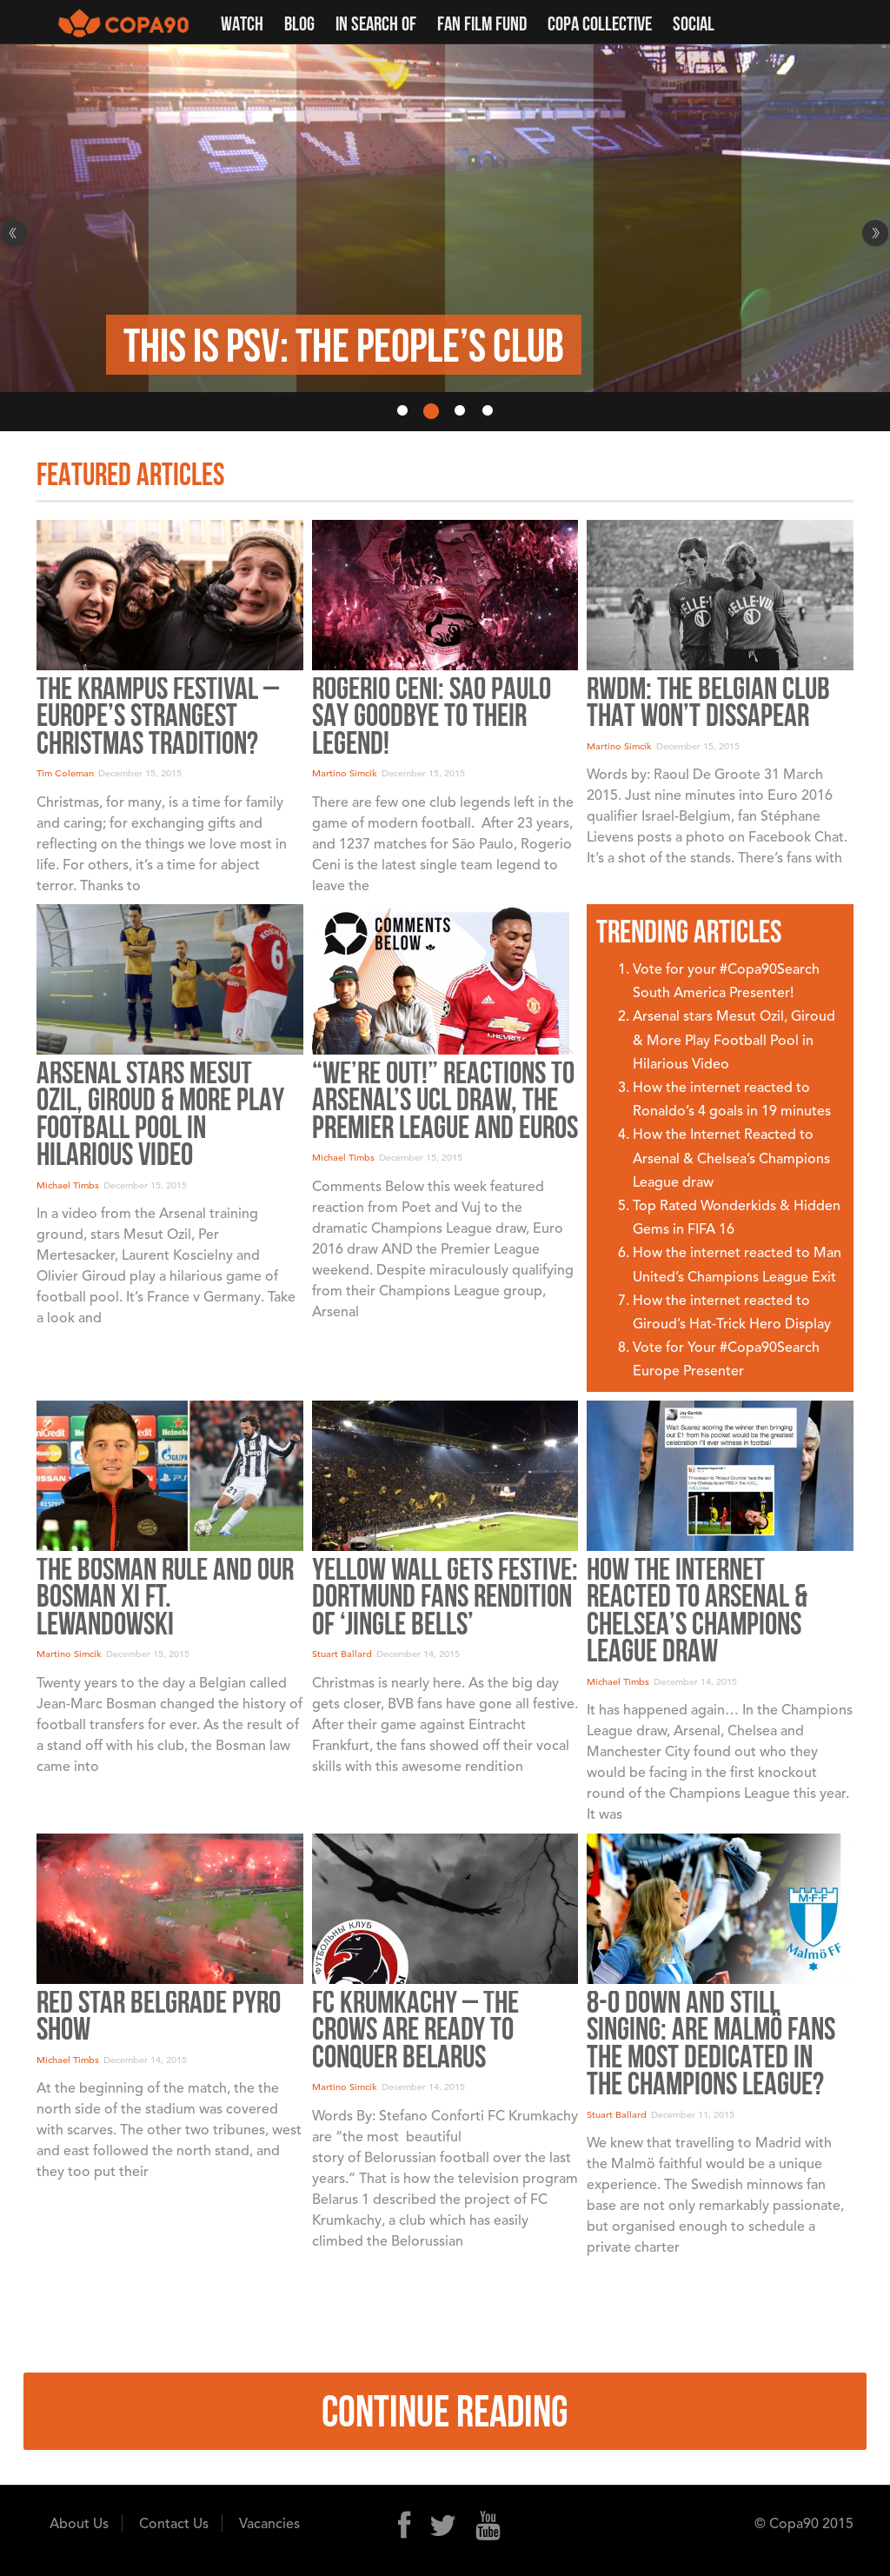 Copa90 Competitors, Revenue and Employees - Owler Company